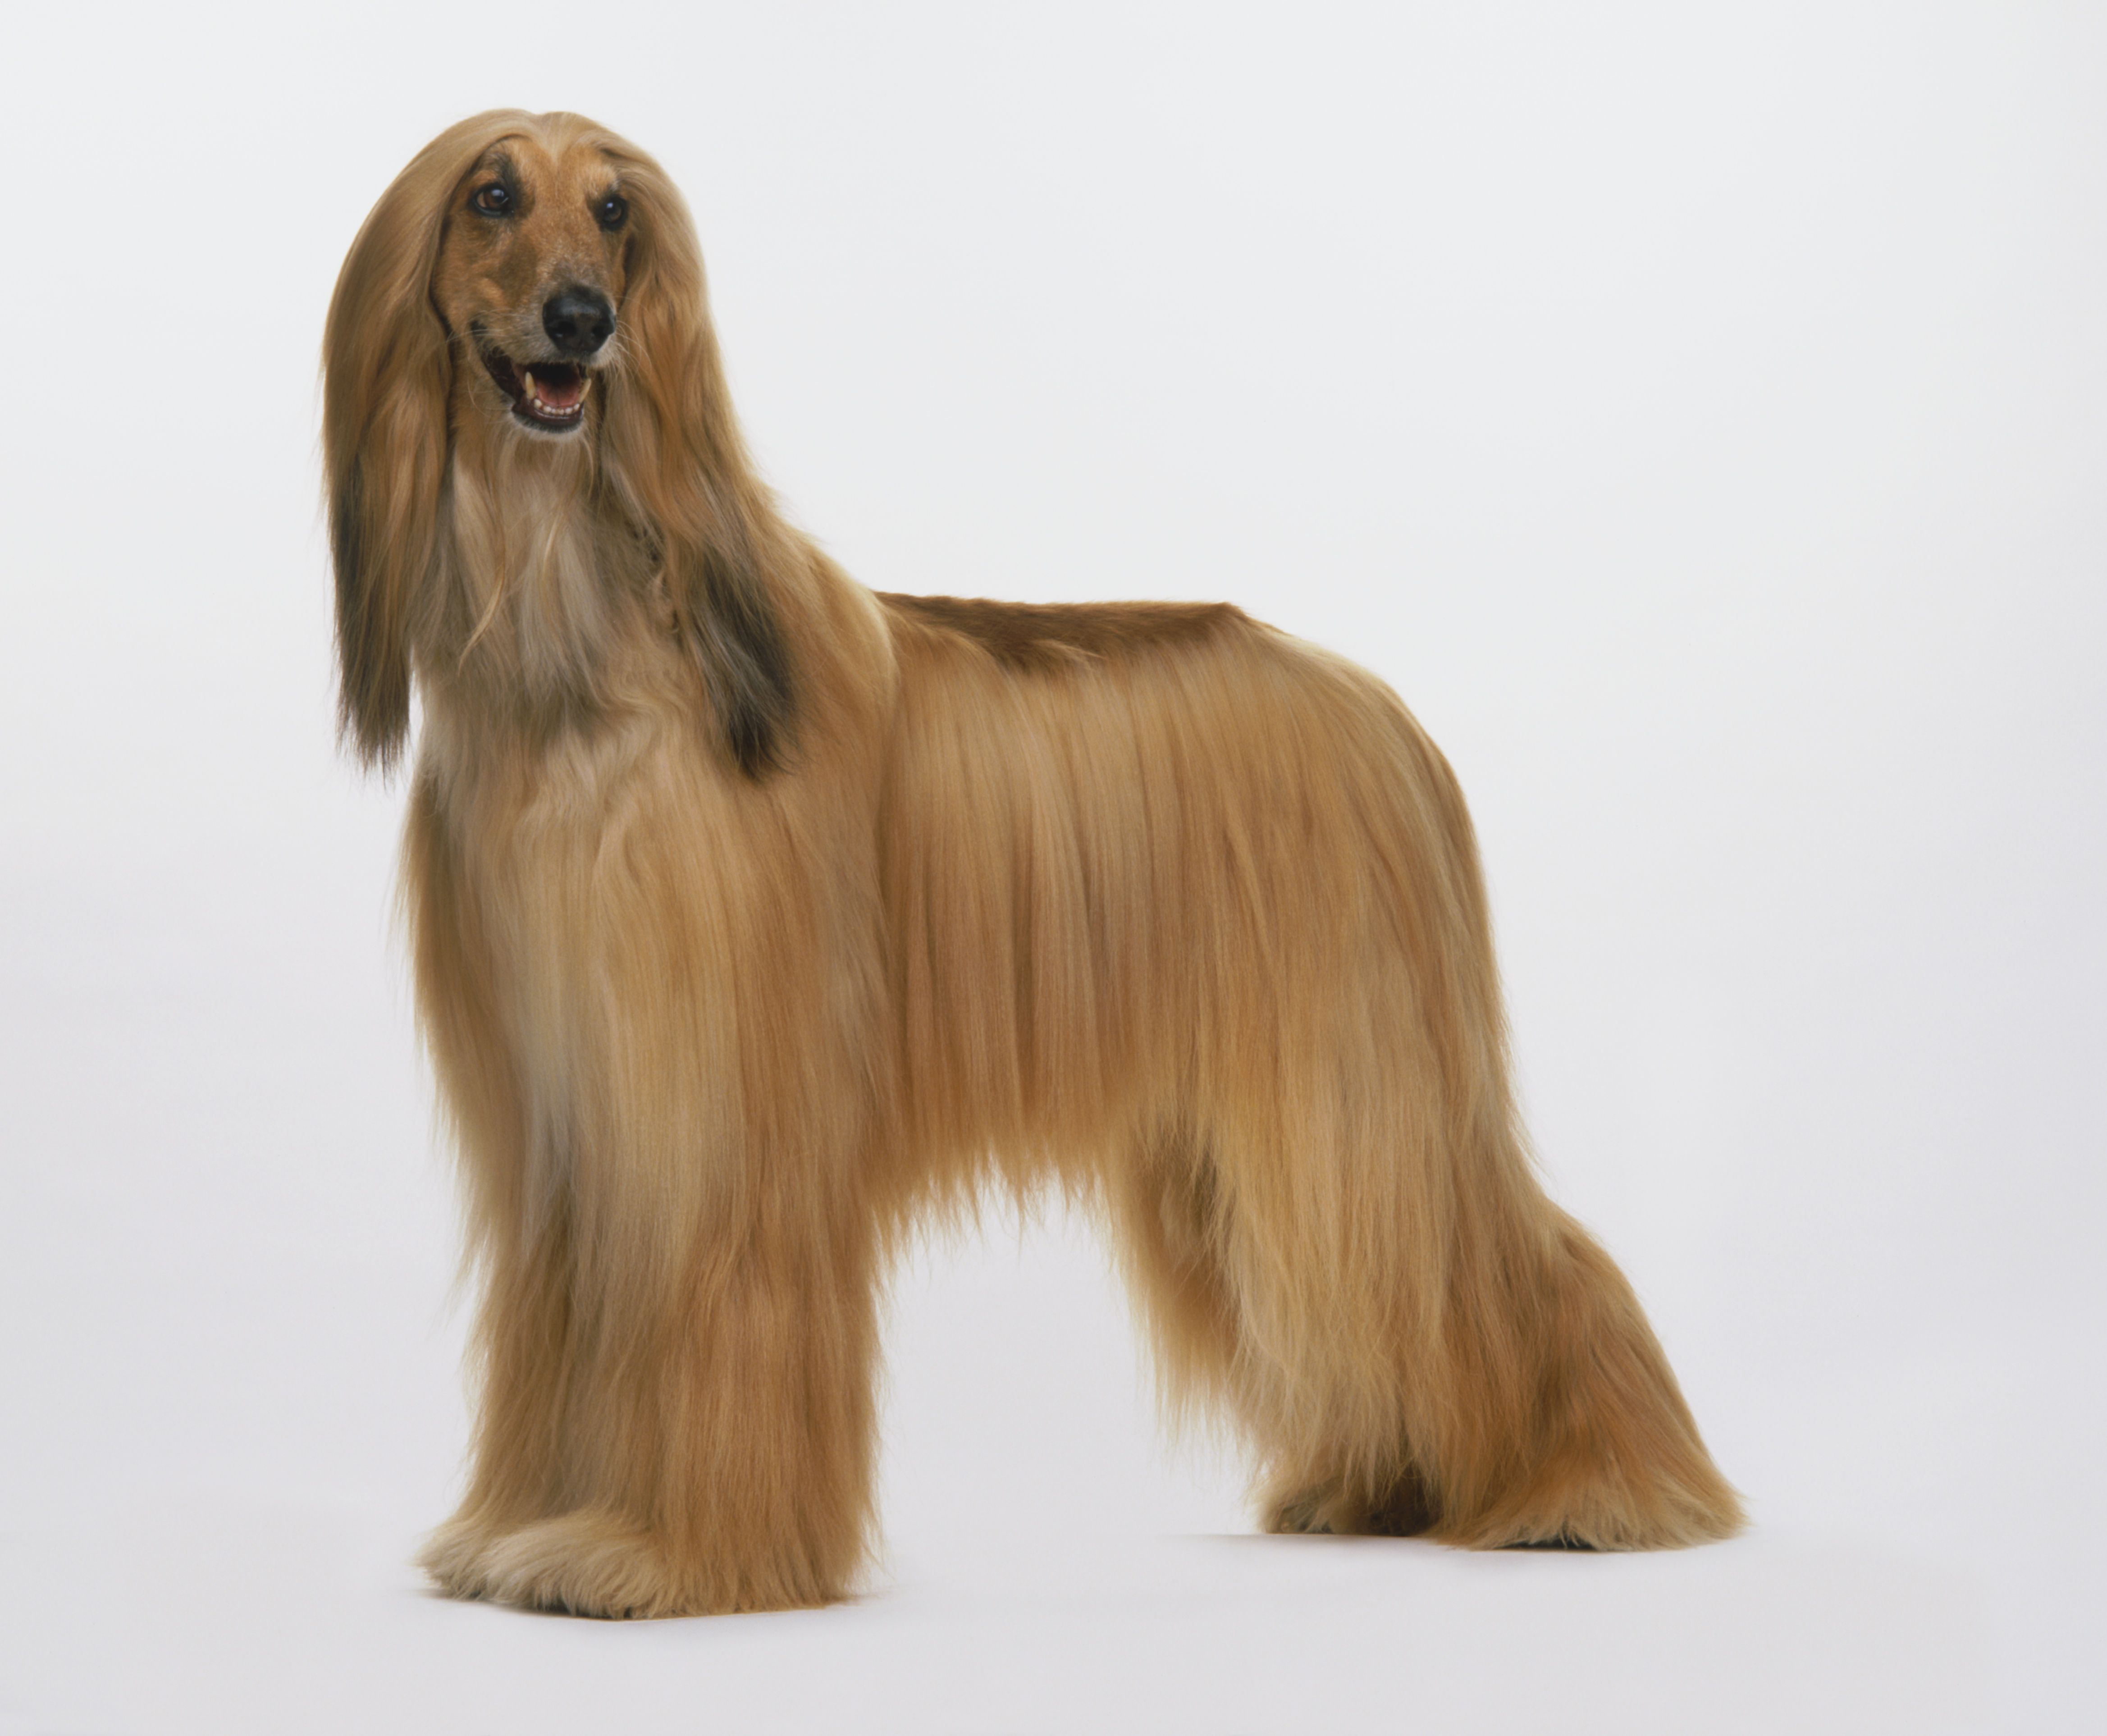 Afghan Hound (Canis familiaris) standing, facing forward, side view